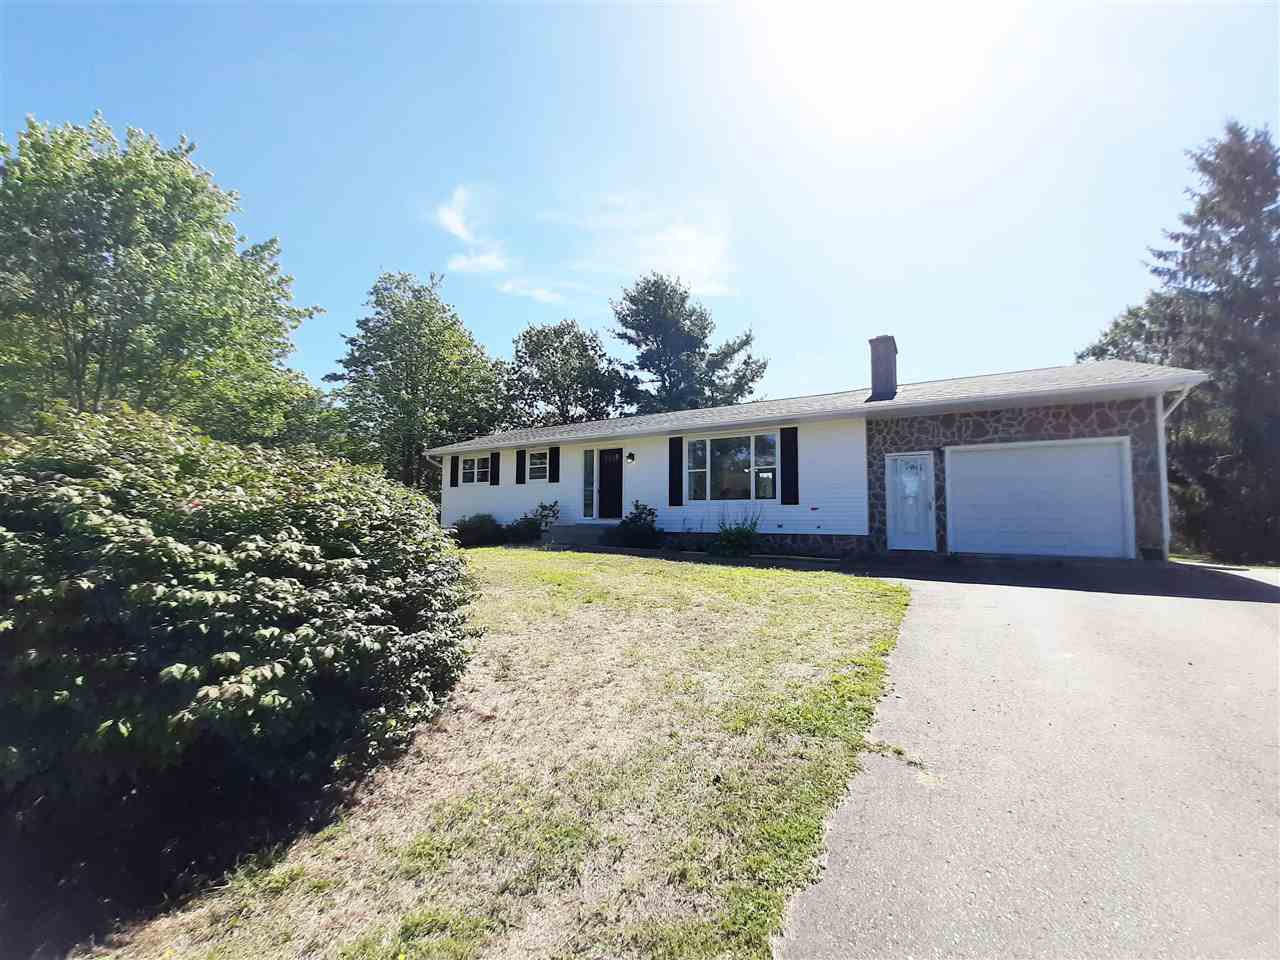 Main Photo: 1470 Highway 1 in Auburn: 404-Kings County Residential for sale (Annapolis Valley)  : MLS®# 202017283